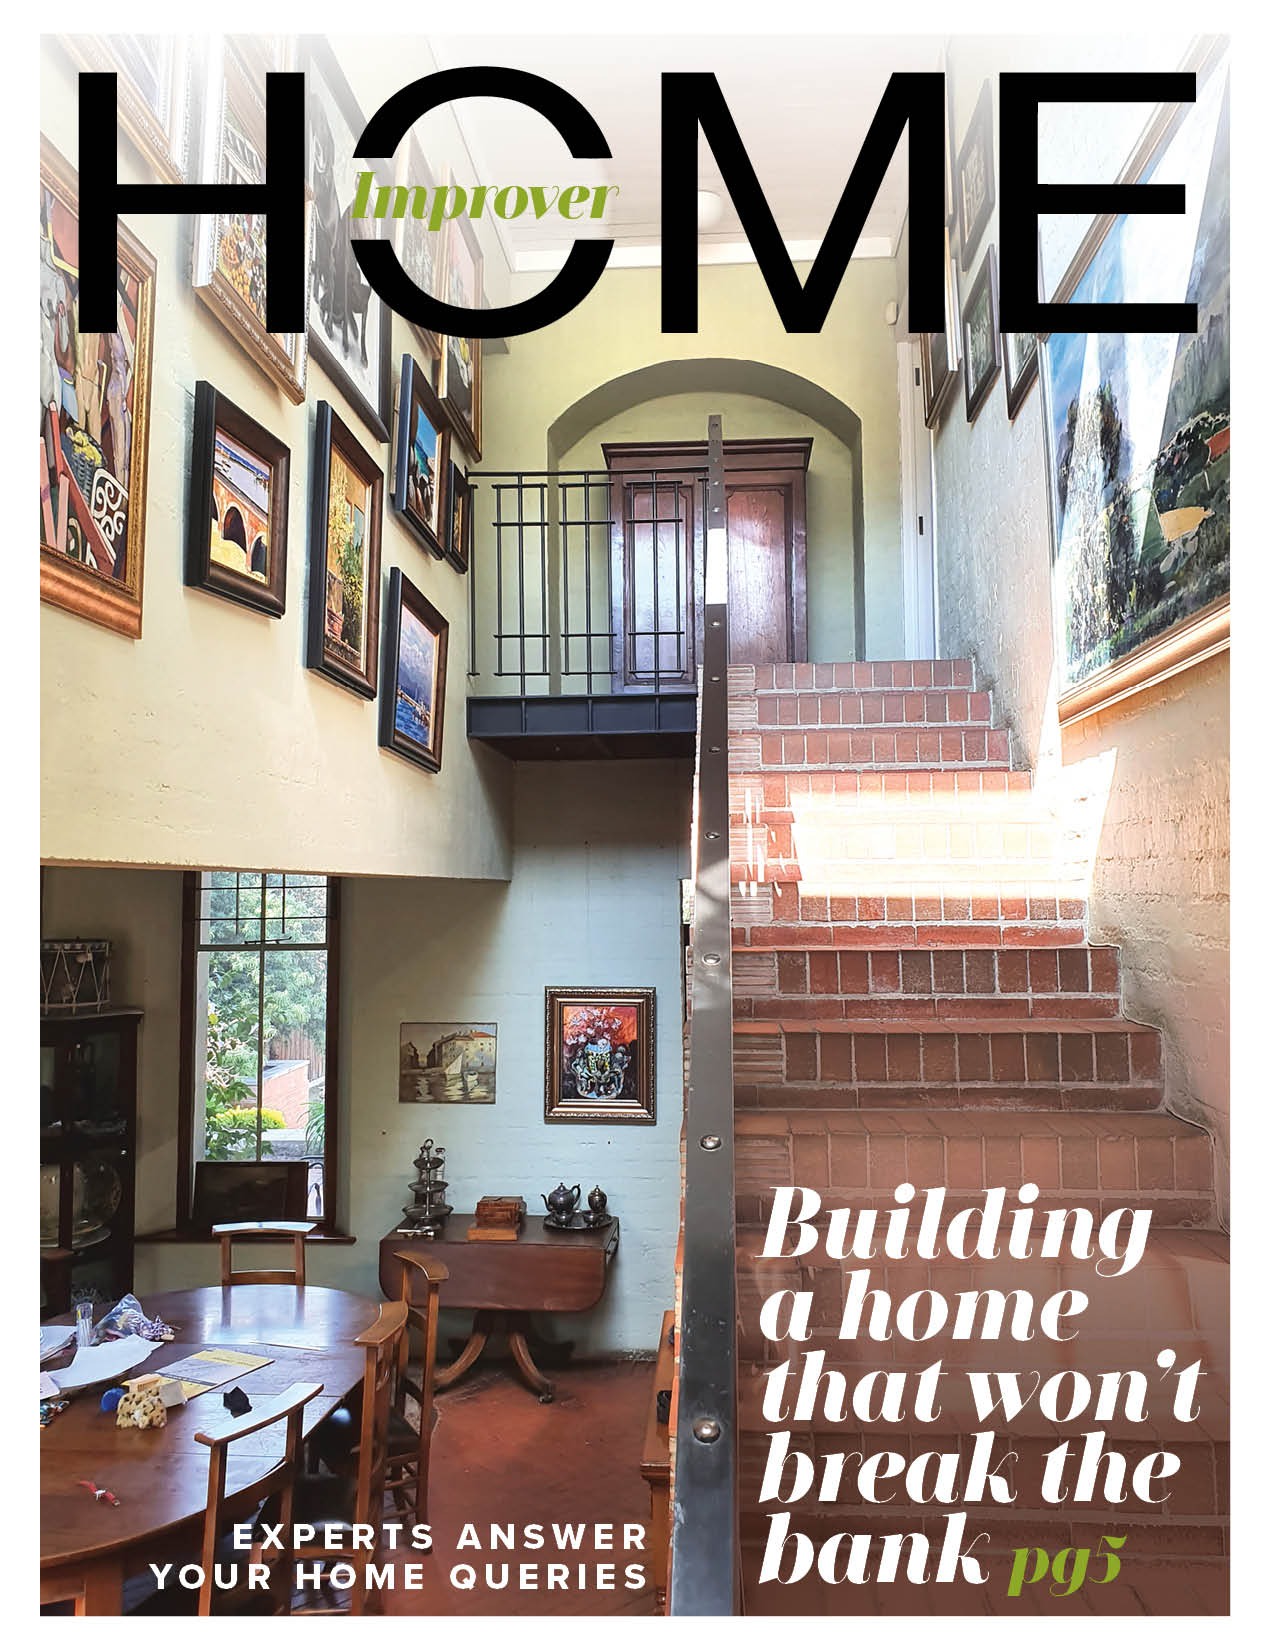 Home Improver Issue 1